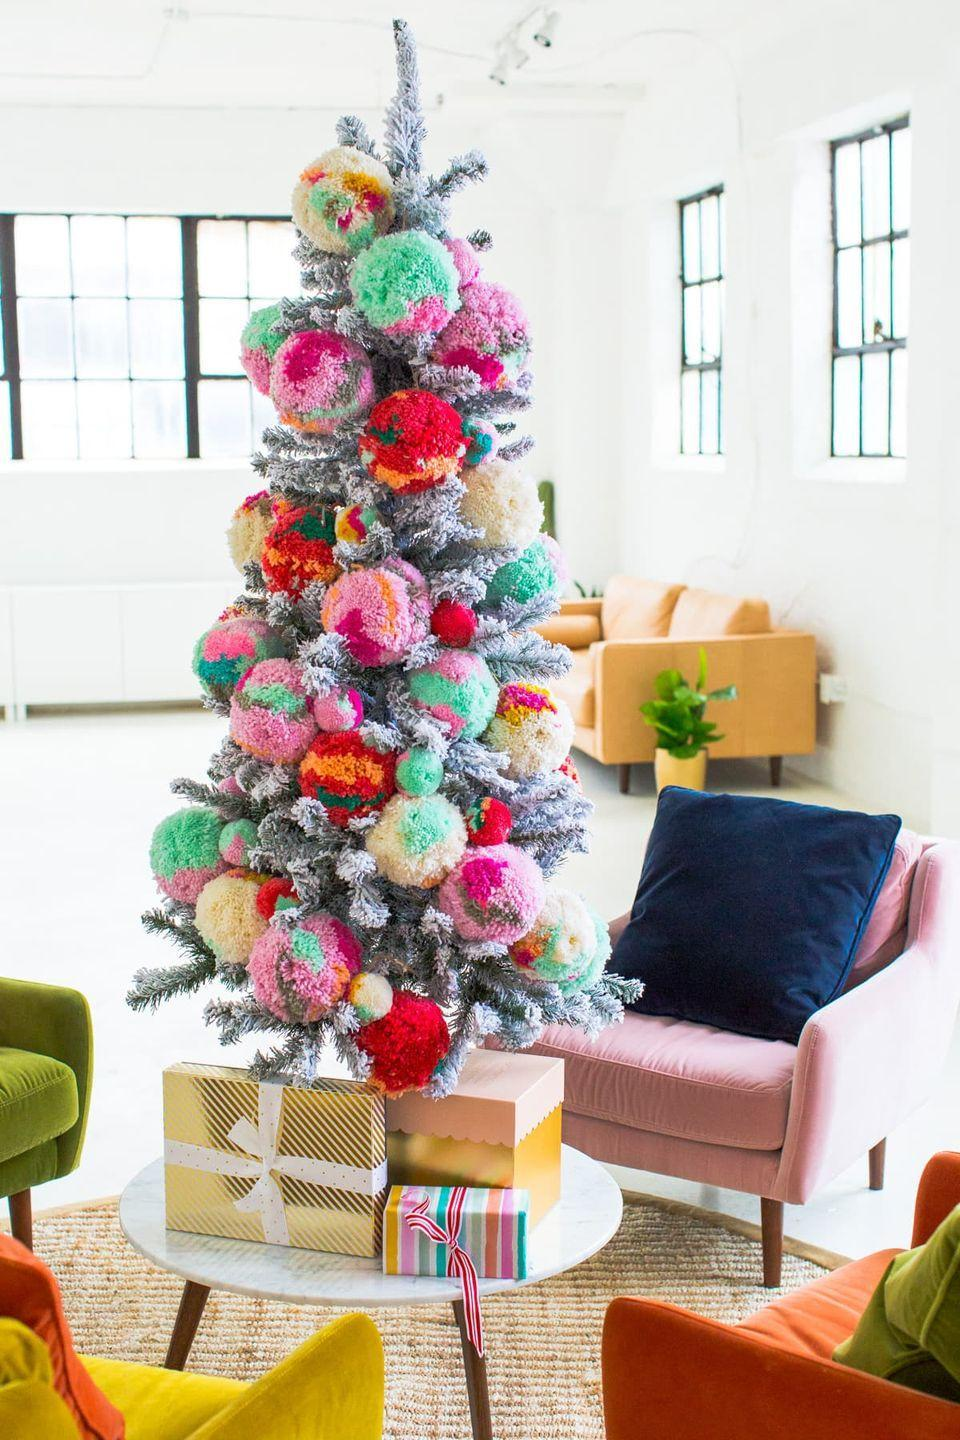 """<p>You'll instantly feel more (holly) jolly once you place multi-colored pom-poms in your artificial tree. Who needs ornaments anyway?!</p><p><em><a href=""""https://sugarandcloth.com/new-studio-sitting-area-decorated-christmas/"""" rel=""""nofollow noopener"""" target=""""_blank"""" data-ylk=""""slk:Get the tutorial at Sugar & Cloth »"""" class=""""link rapid-noclick-resp"""">Get the tutorial at Sugar & Cloth »</a></em></p>"""